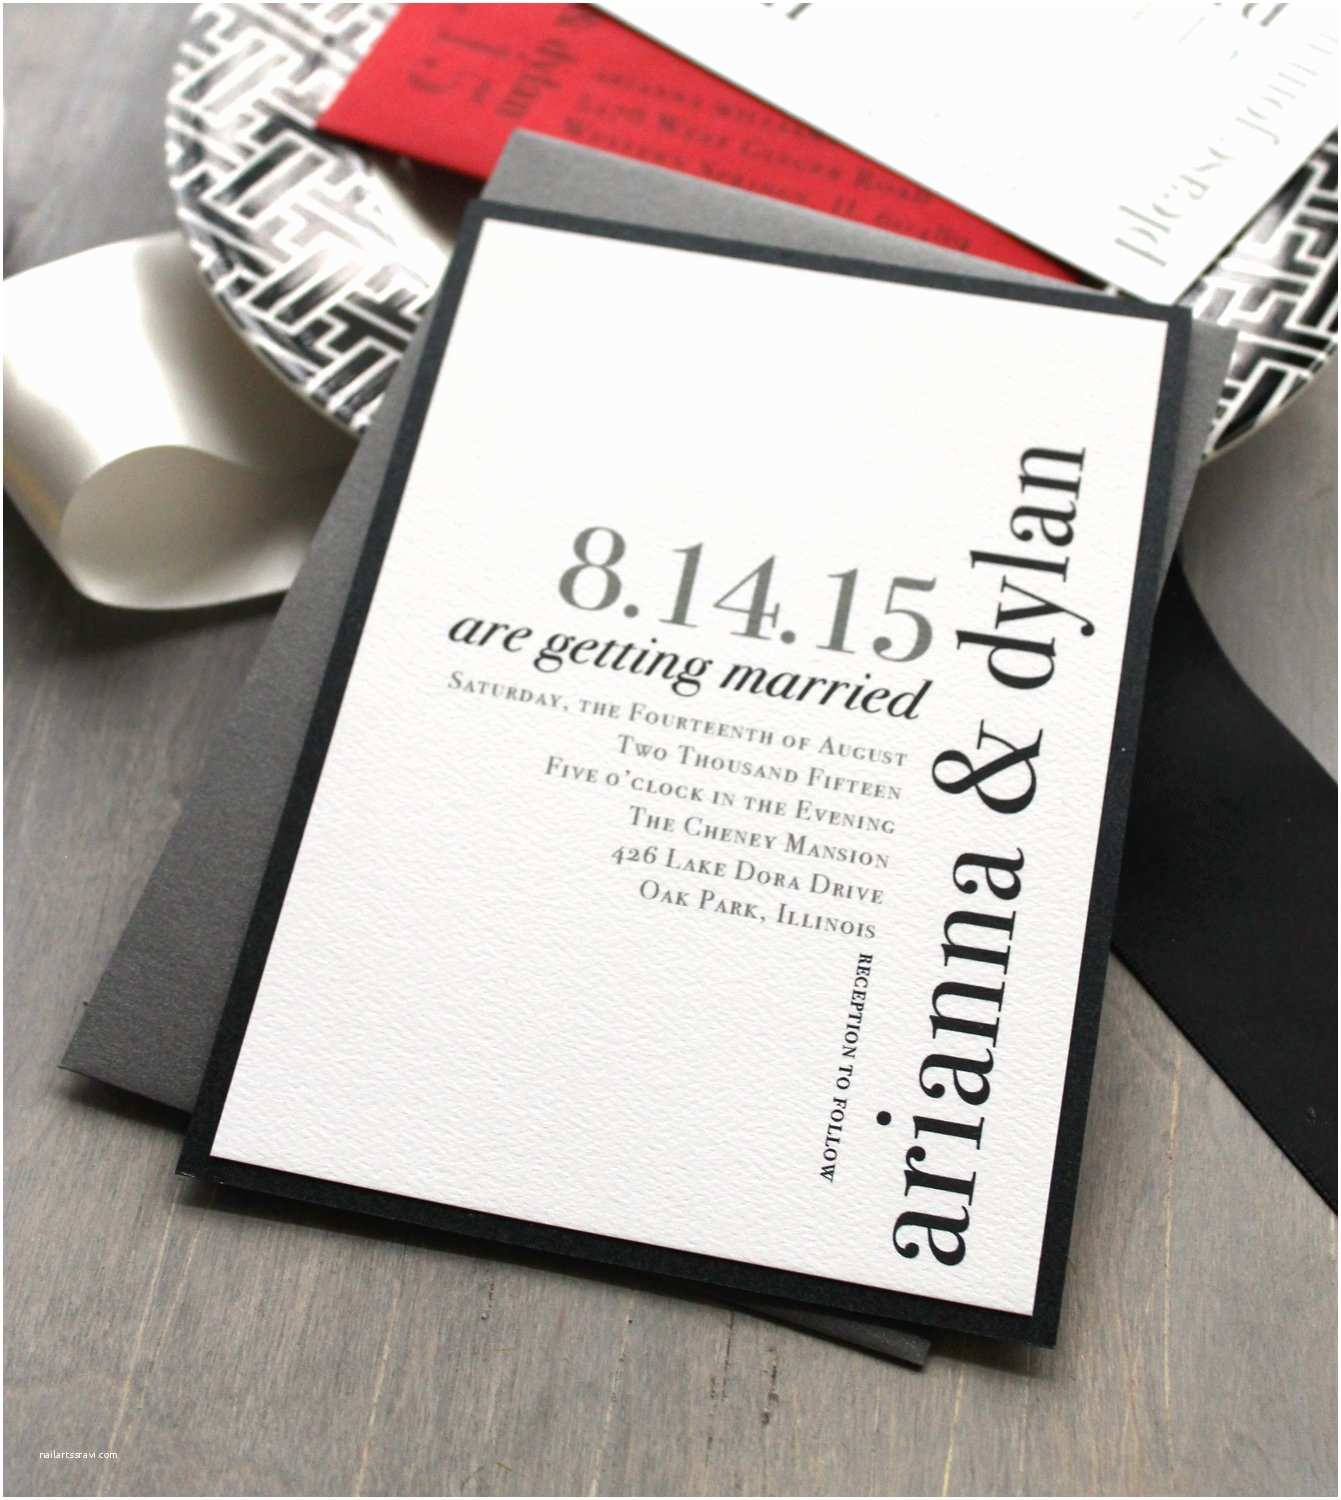 Wedding Invitation Designs Unique Wedding Invitation Ideas Modwedding